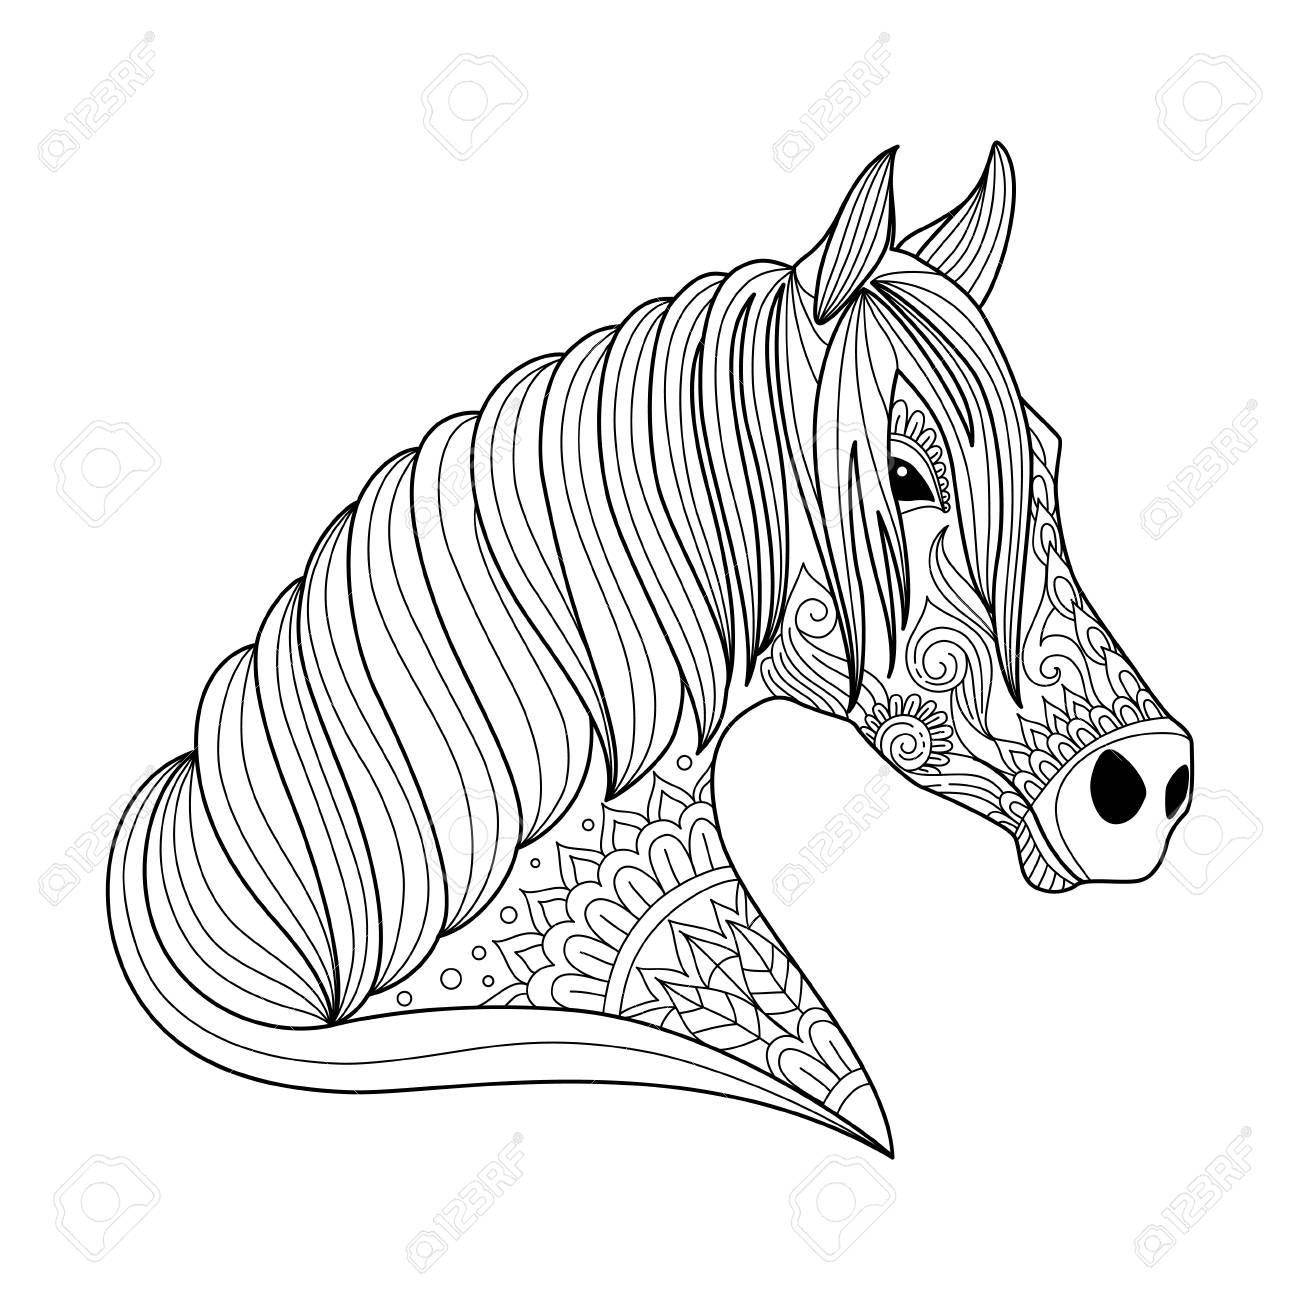 1300x1300 Drawing Horse Zentangle Style For Adult And Children Coloring